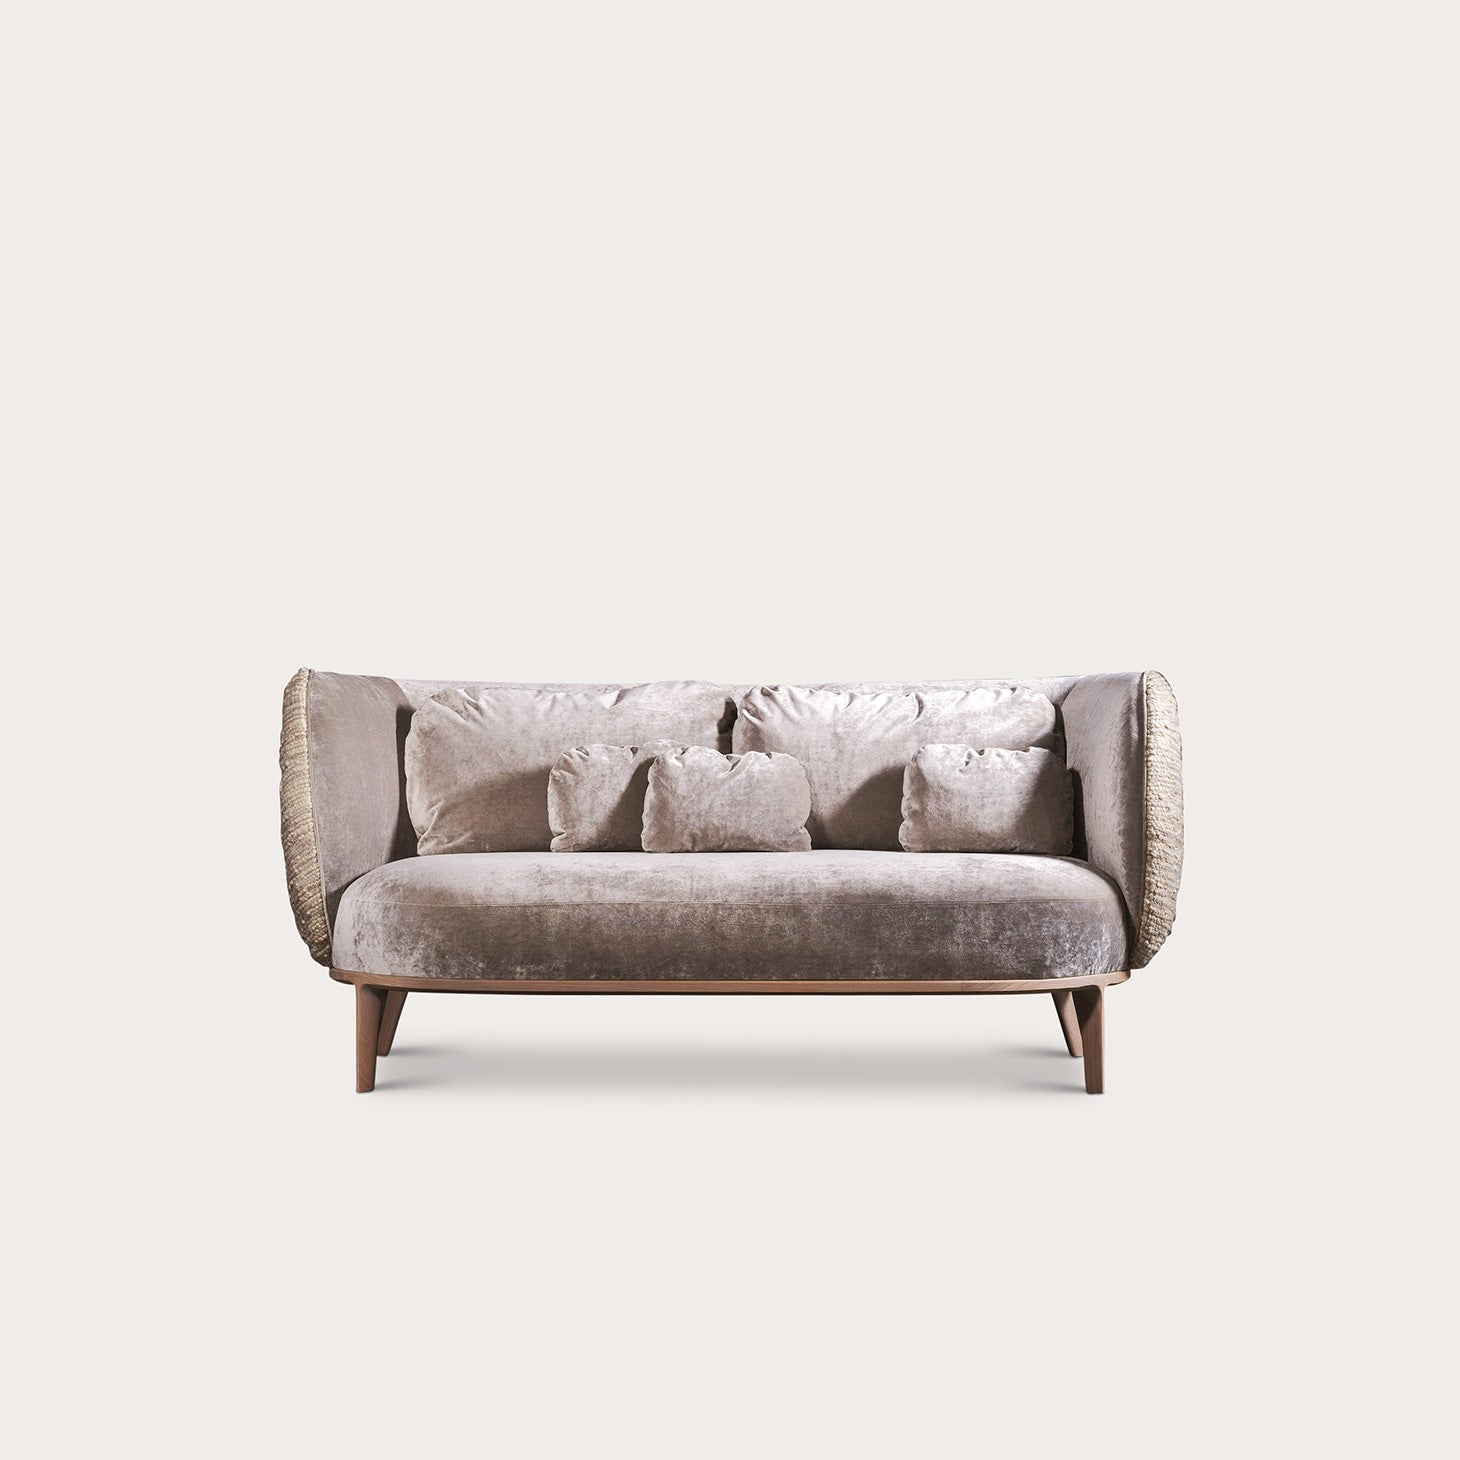 COSONA Sofa Seating Bruno Moinard Designer Furniture Sku: 773-240-10041